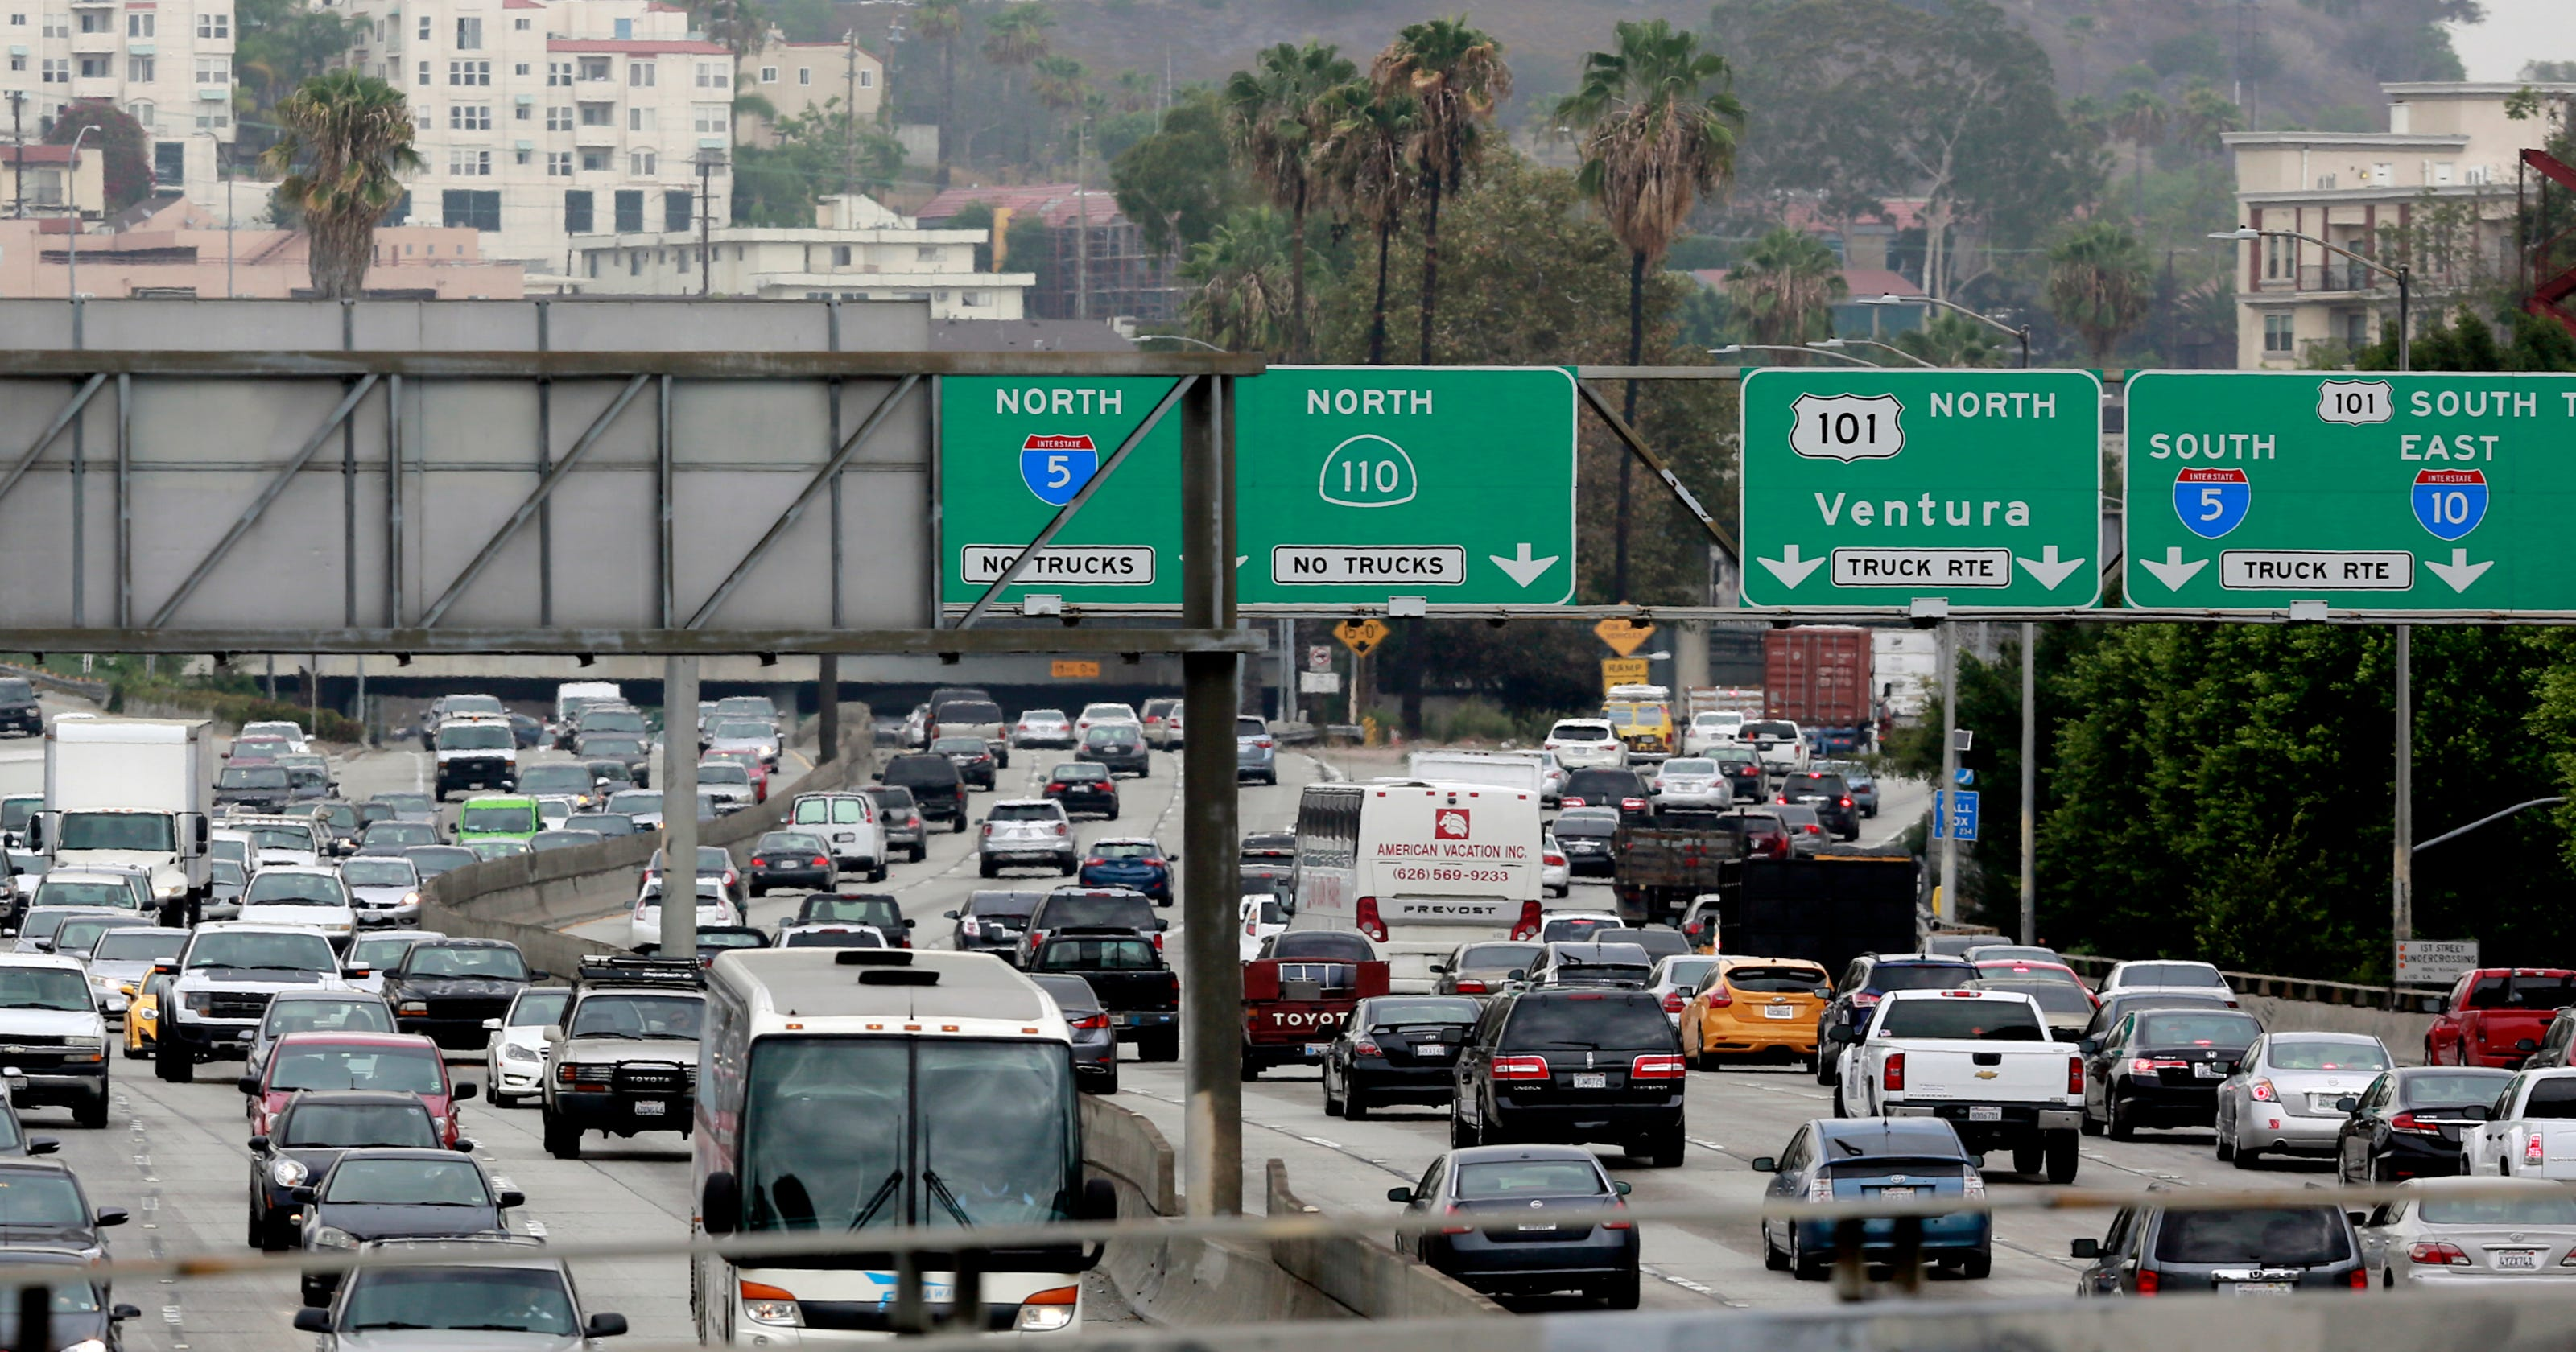 10 cities with the worst traffic